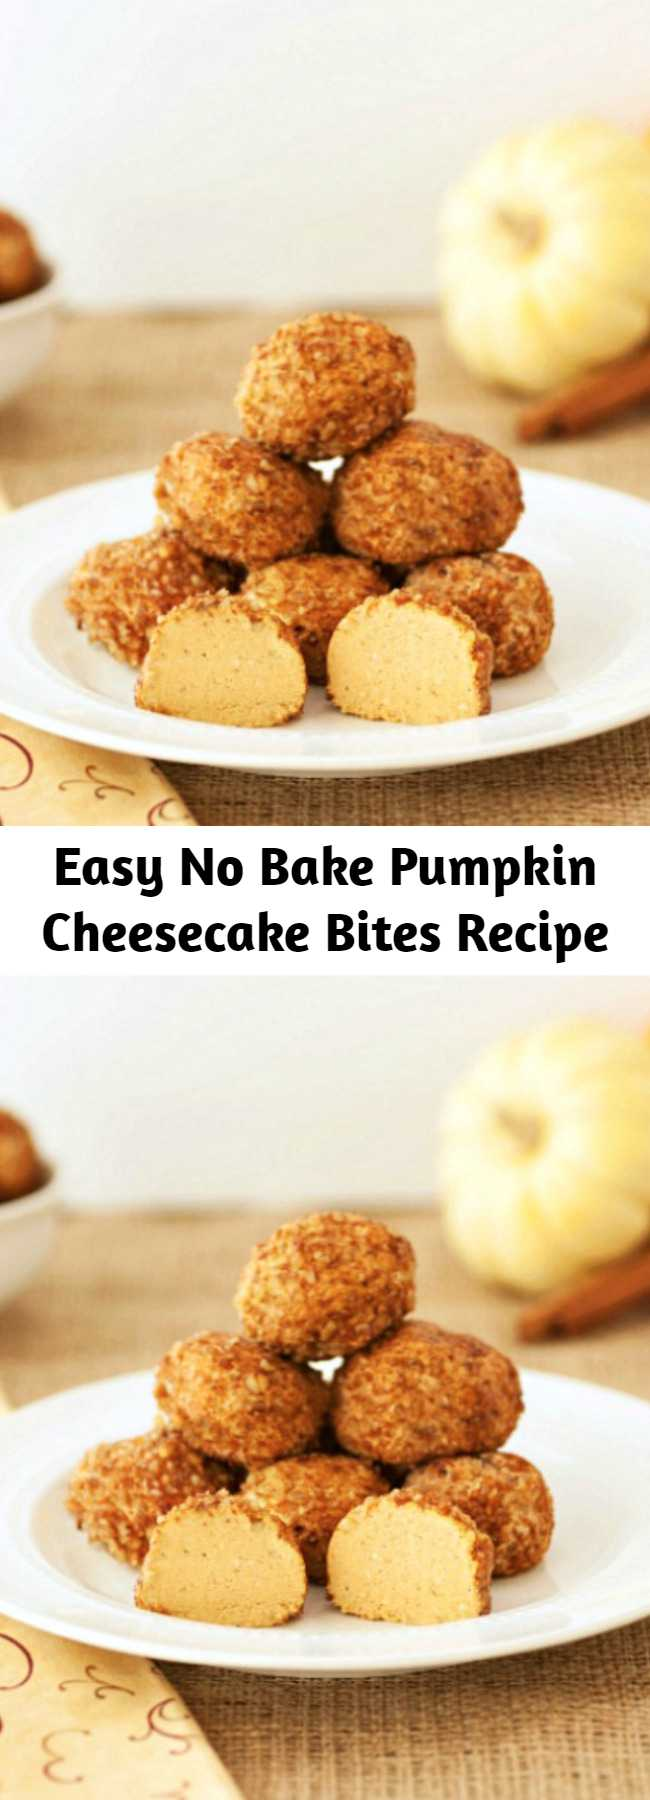 Easy No Bake Pumpkin Cheesecake Bites Recipe - These No Bake Pumpkin Cheesecake Bites are very easy to make. A simple treat that is low carb, grain free, and gluten free.